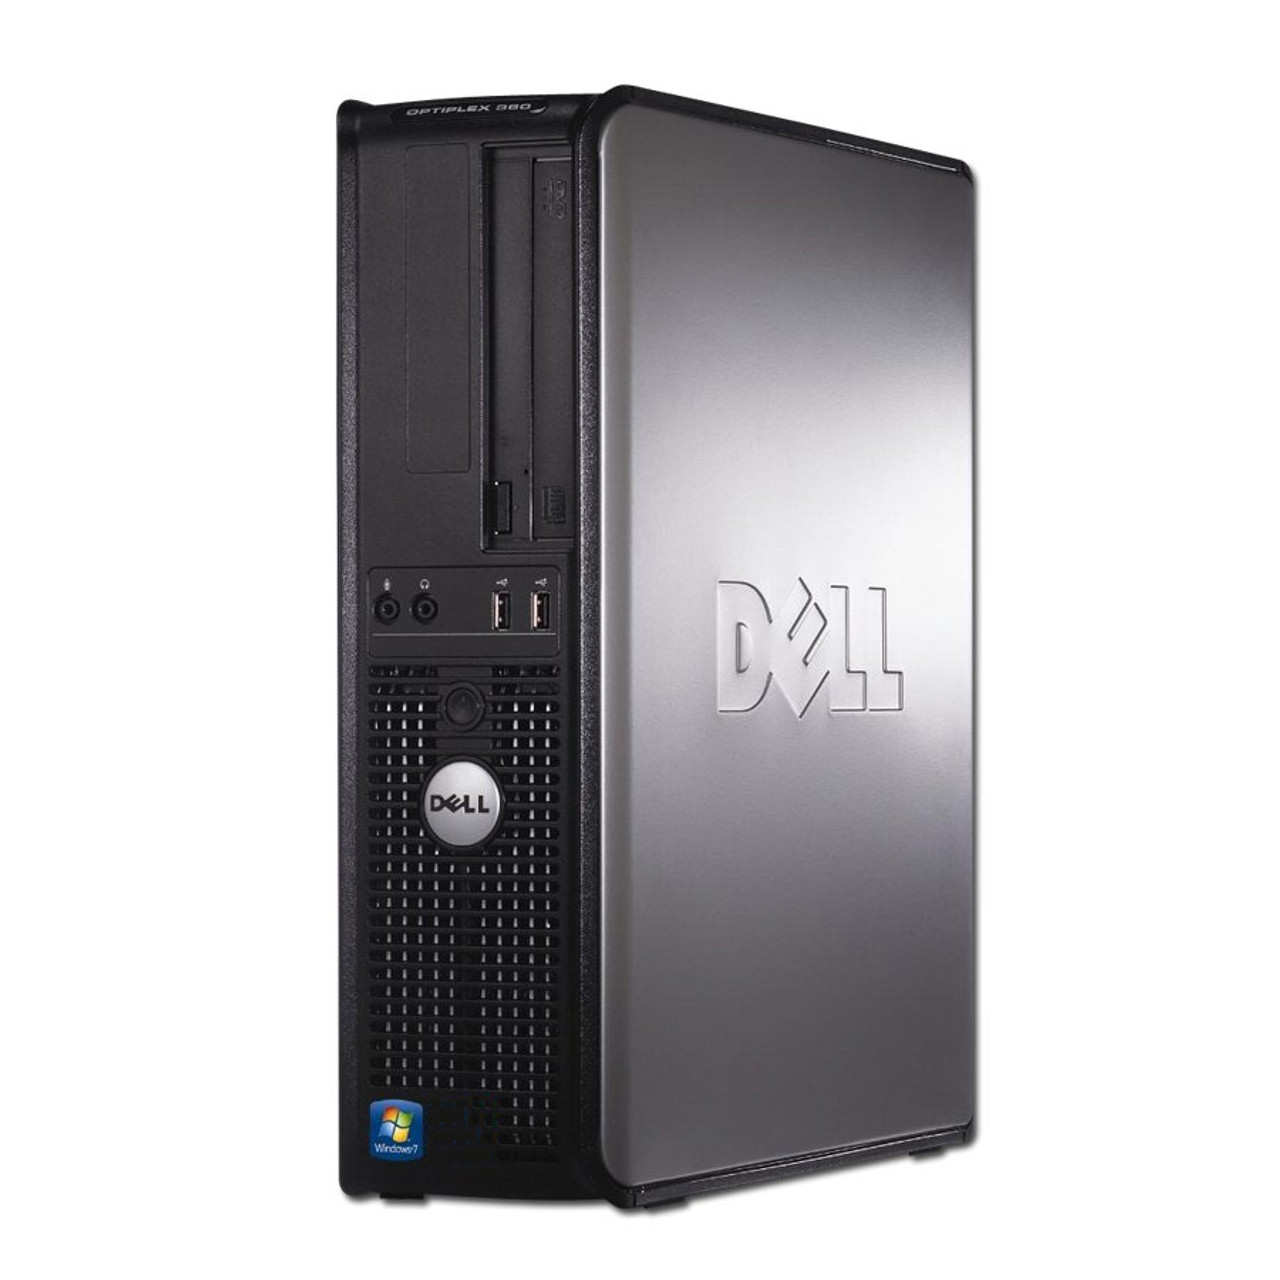 Dell Optiplex 380 SD Intel Core 2 Duo 3.0GHz, 4GB Ram, 160GB HDD, DVD-RW, Windows 7 Pro 64 Desktop Computer